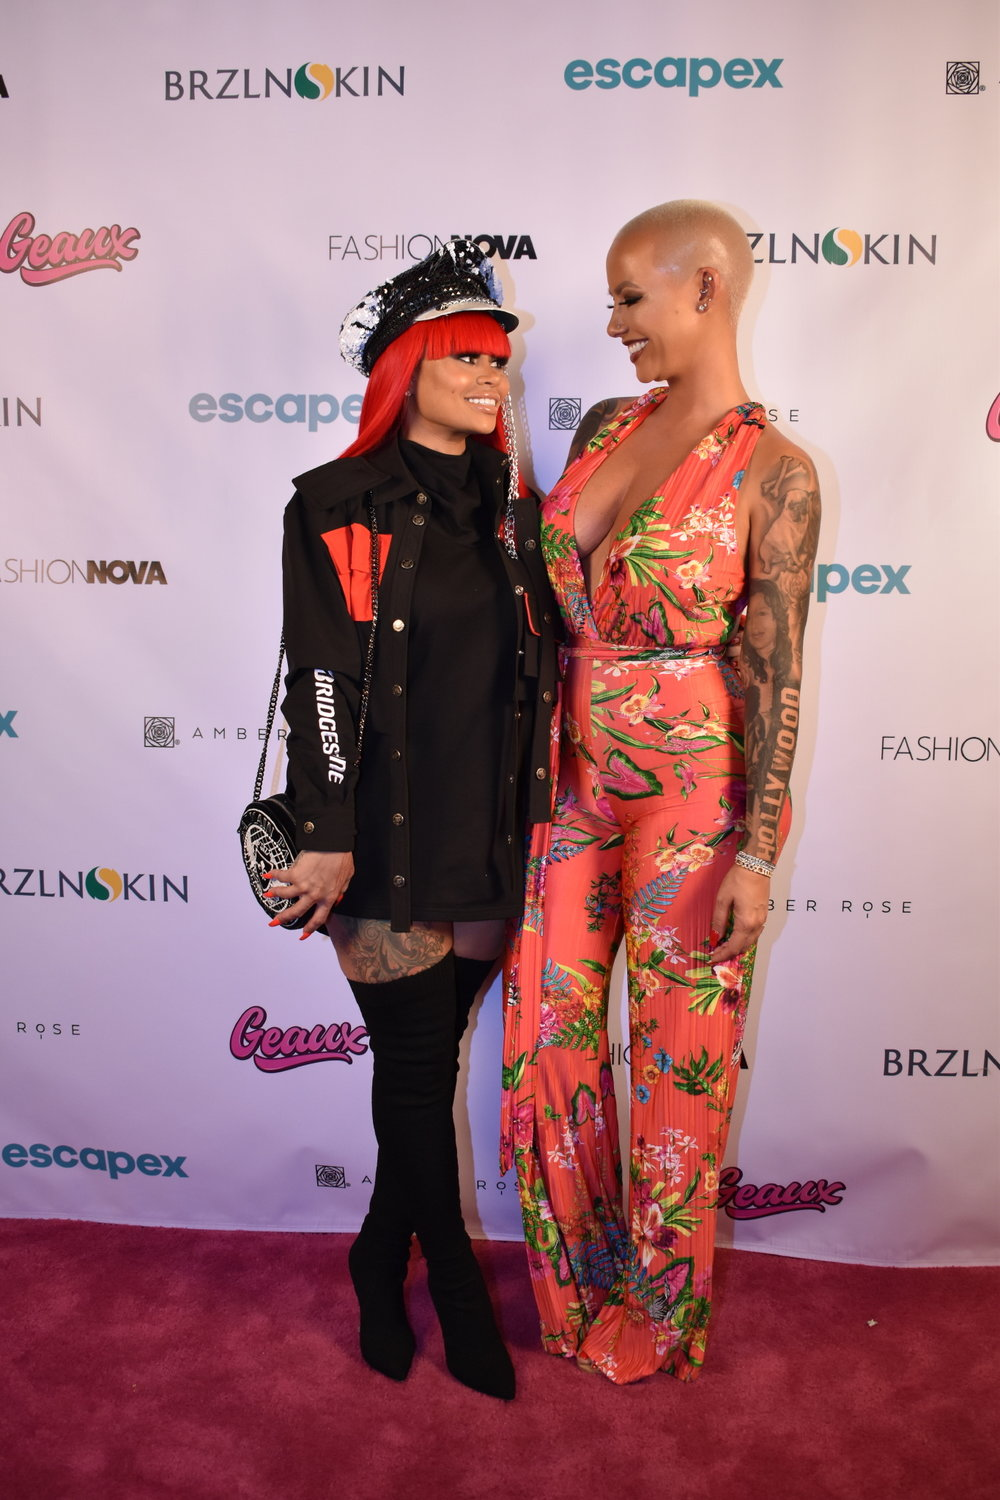 Blac Chyna Came to Support Her Dear Friend at the App Launch Party at Peppermint Club!Photo Credit: Sophie Kautz